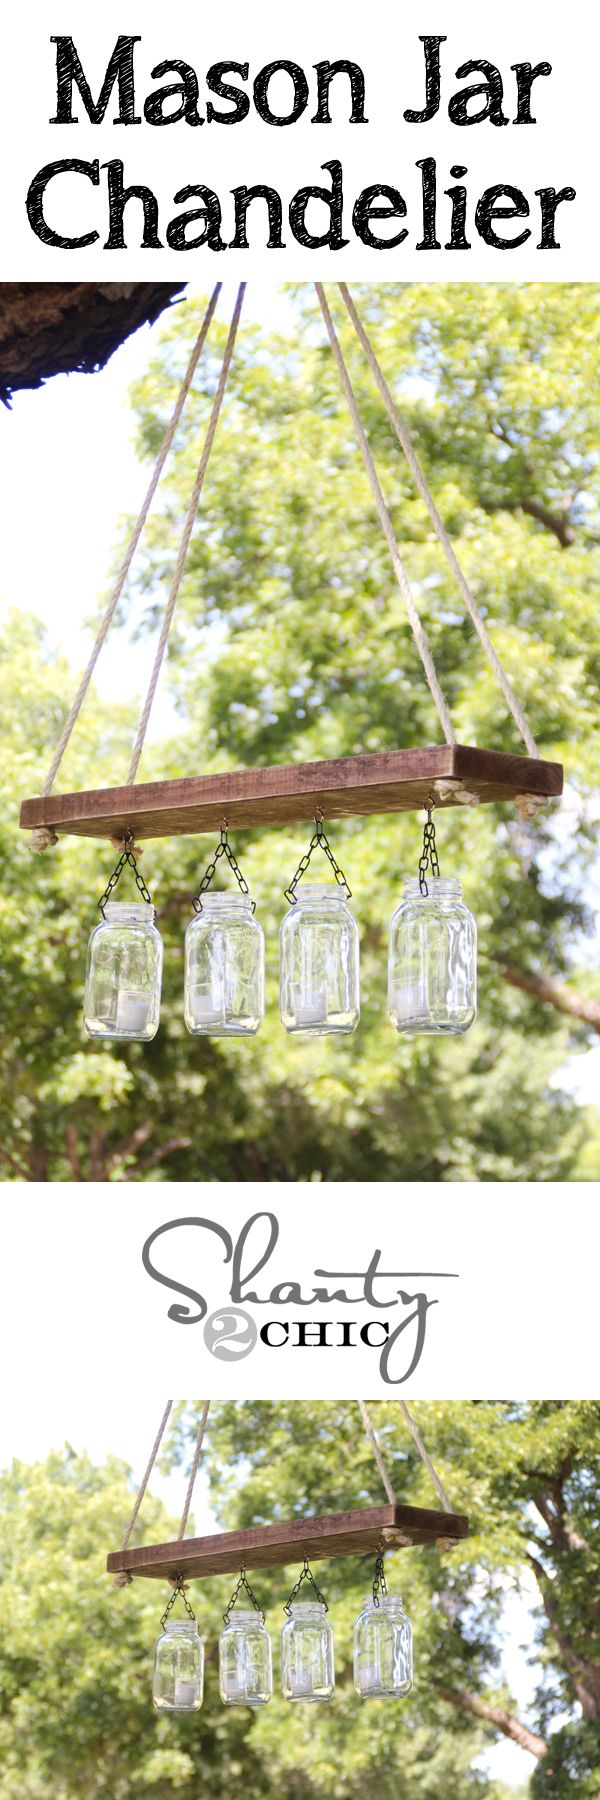 Make an outdoor mason jar chandelier for 10 mason jar chandelier diy mason jar crafts outdoor chandelier im just not sure how you would light the candles easily arubaitofo Images